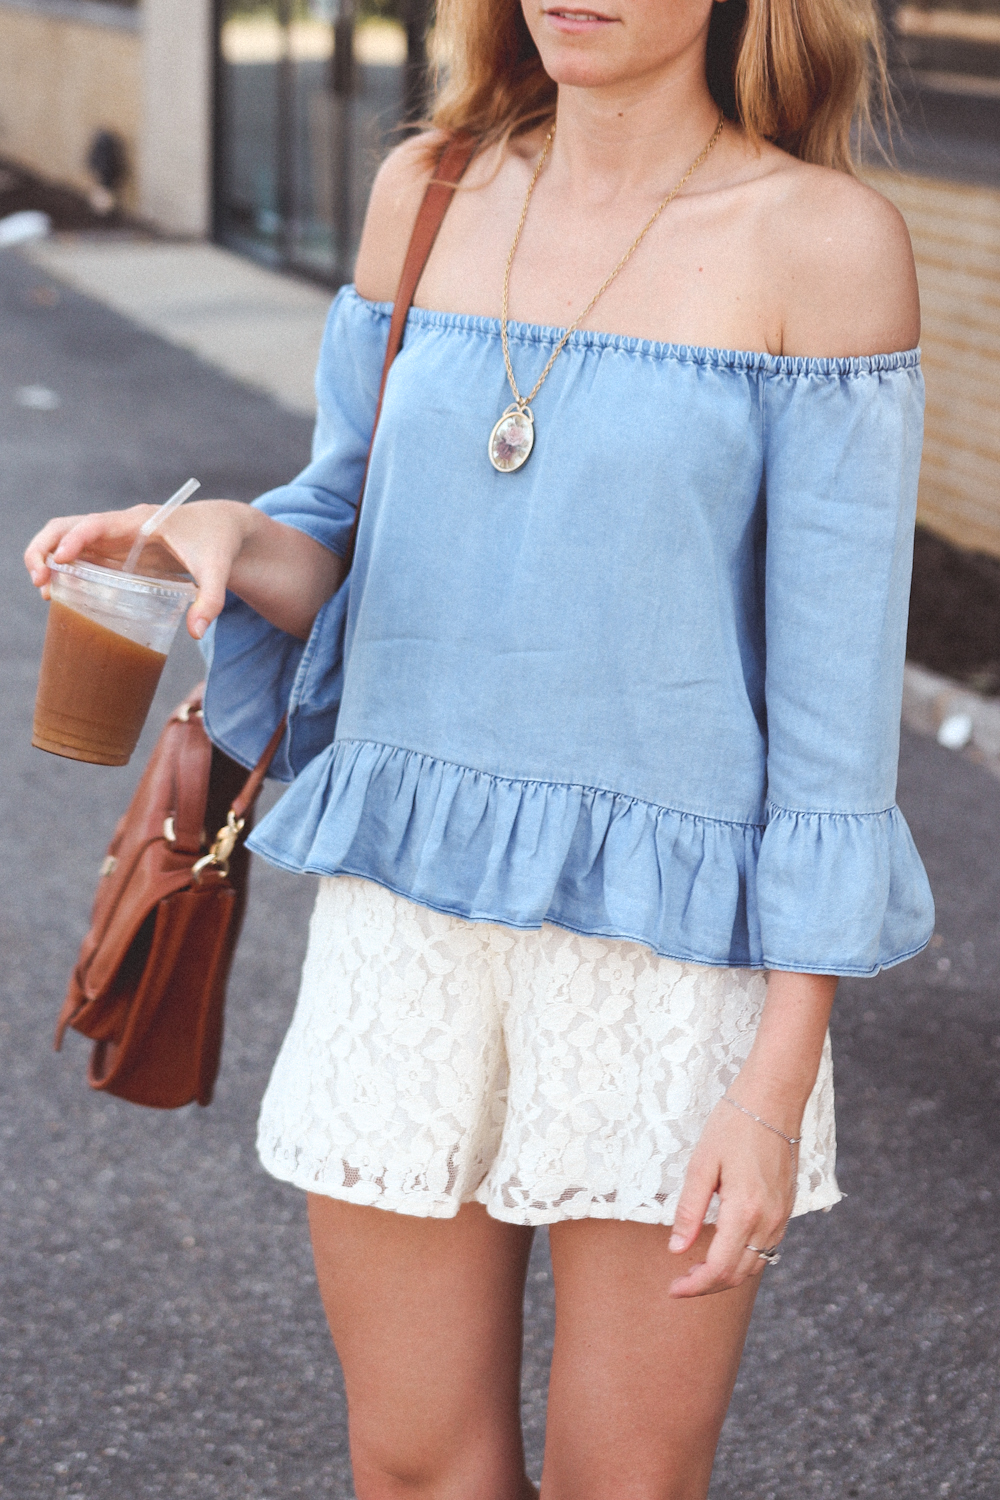 zara off the shoulder blouse, lace shorts, long beach ny fashion, nyc fashion blog, fashion bloggers nyc